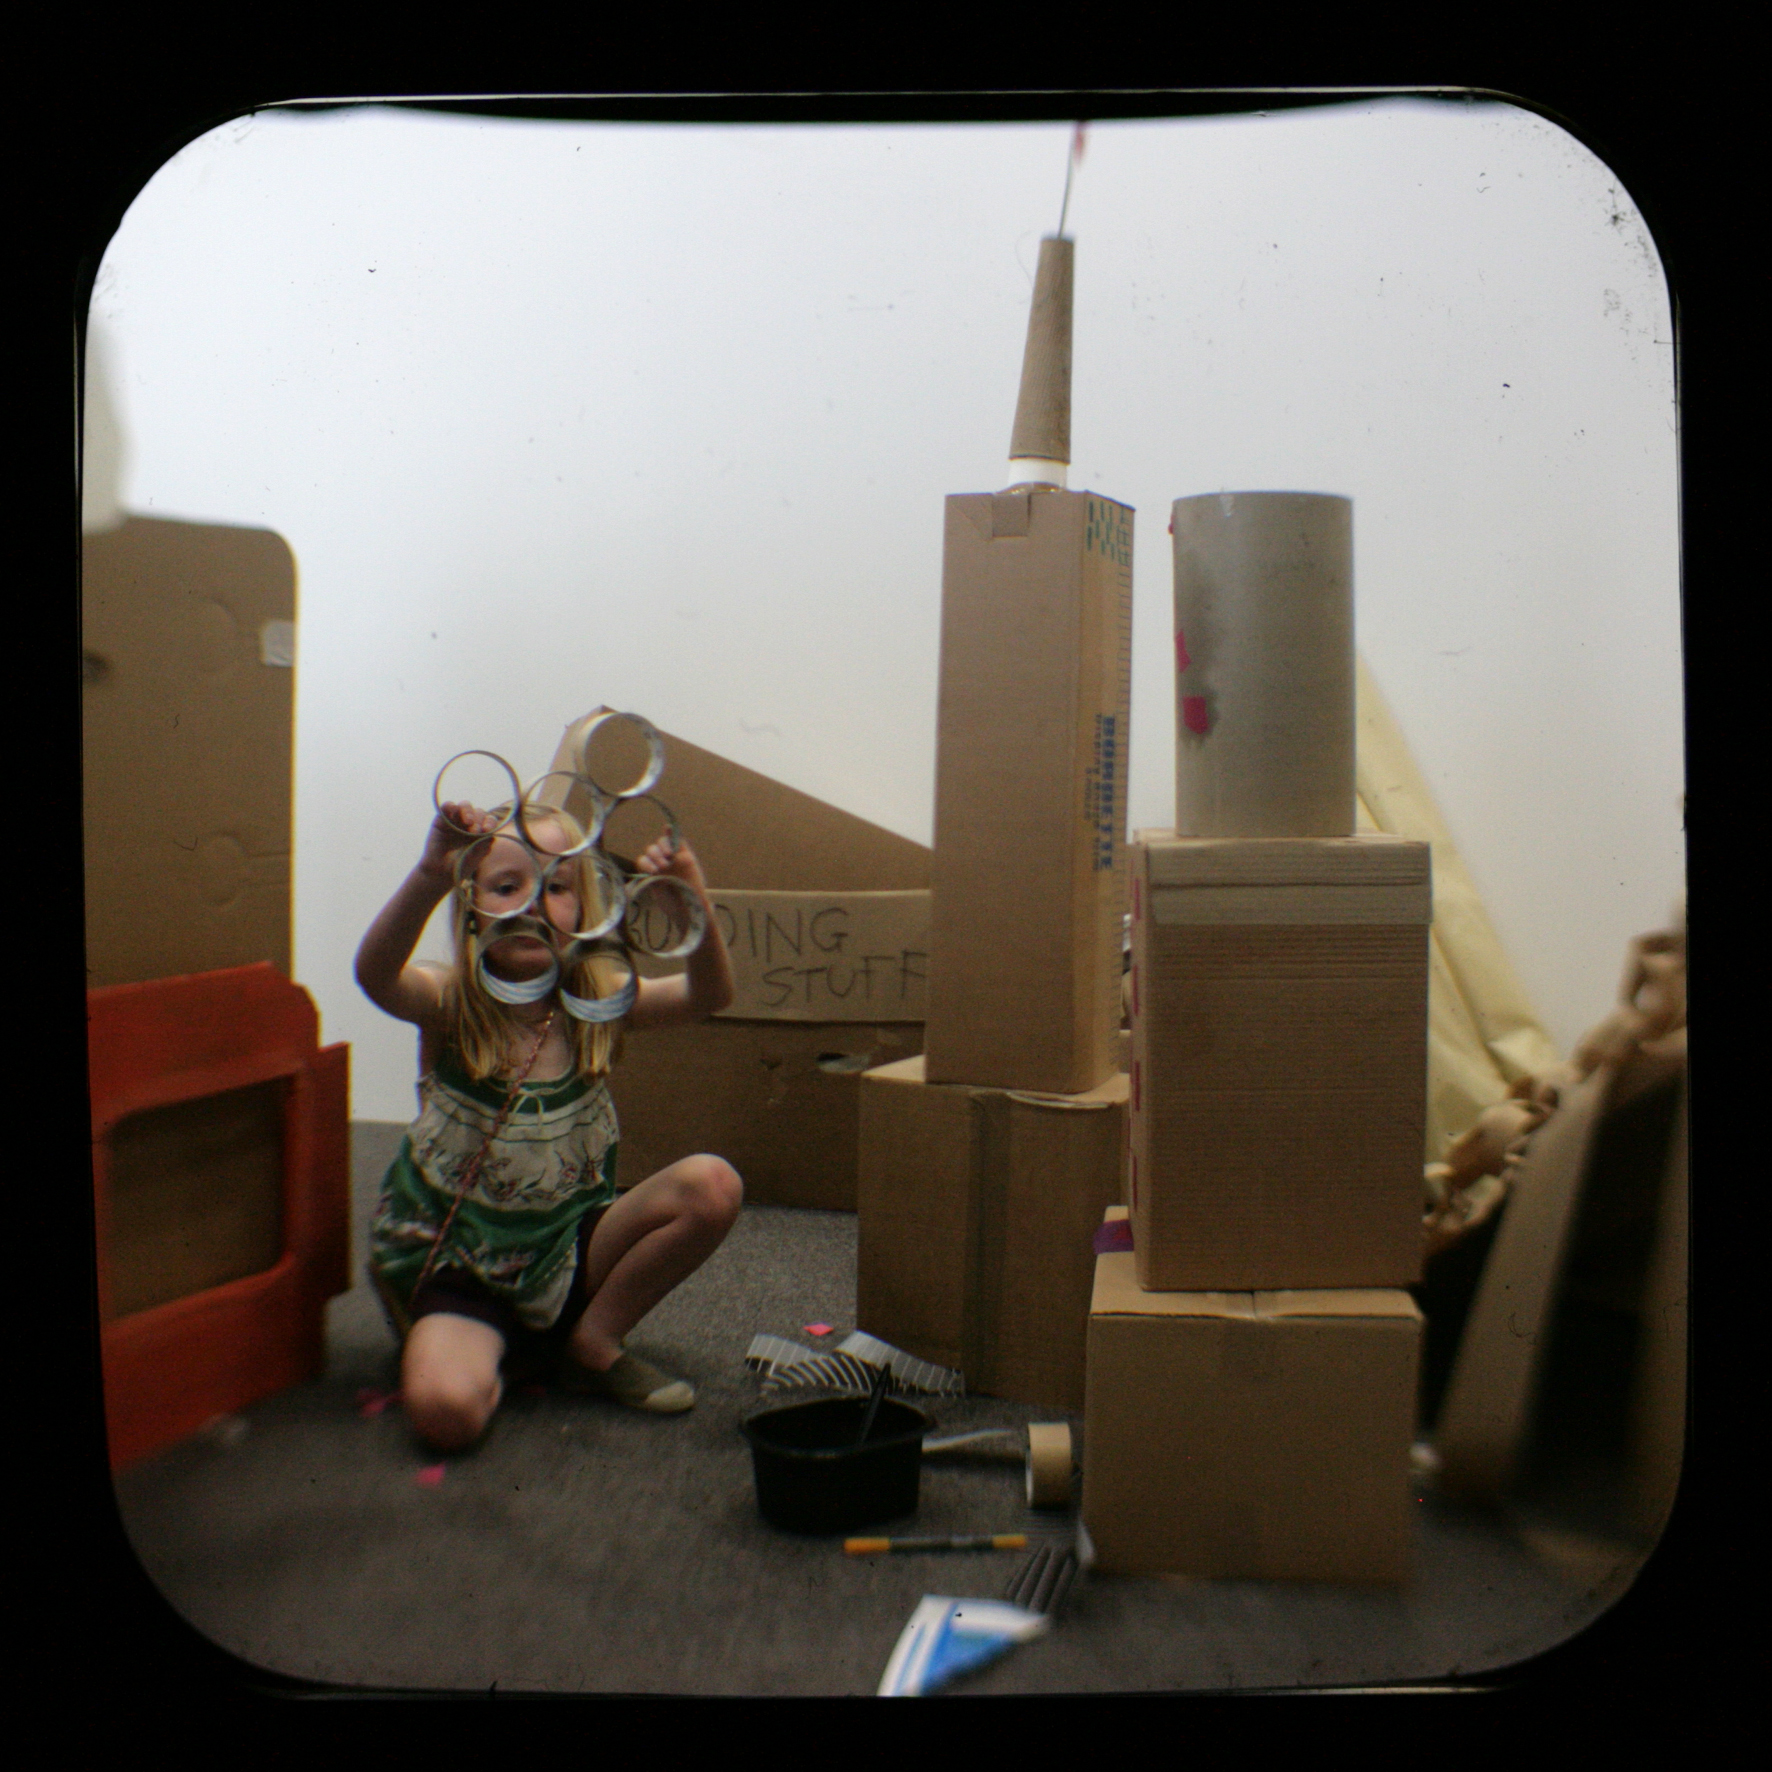 John Baucher cardboard cities 2010 2